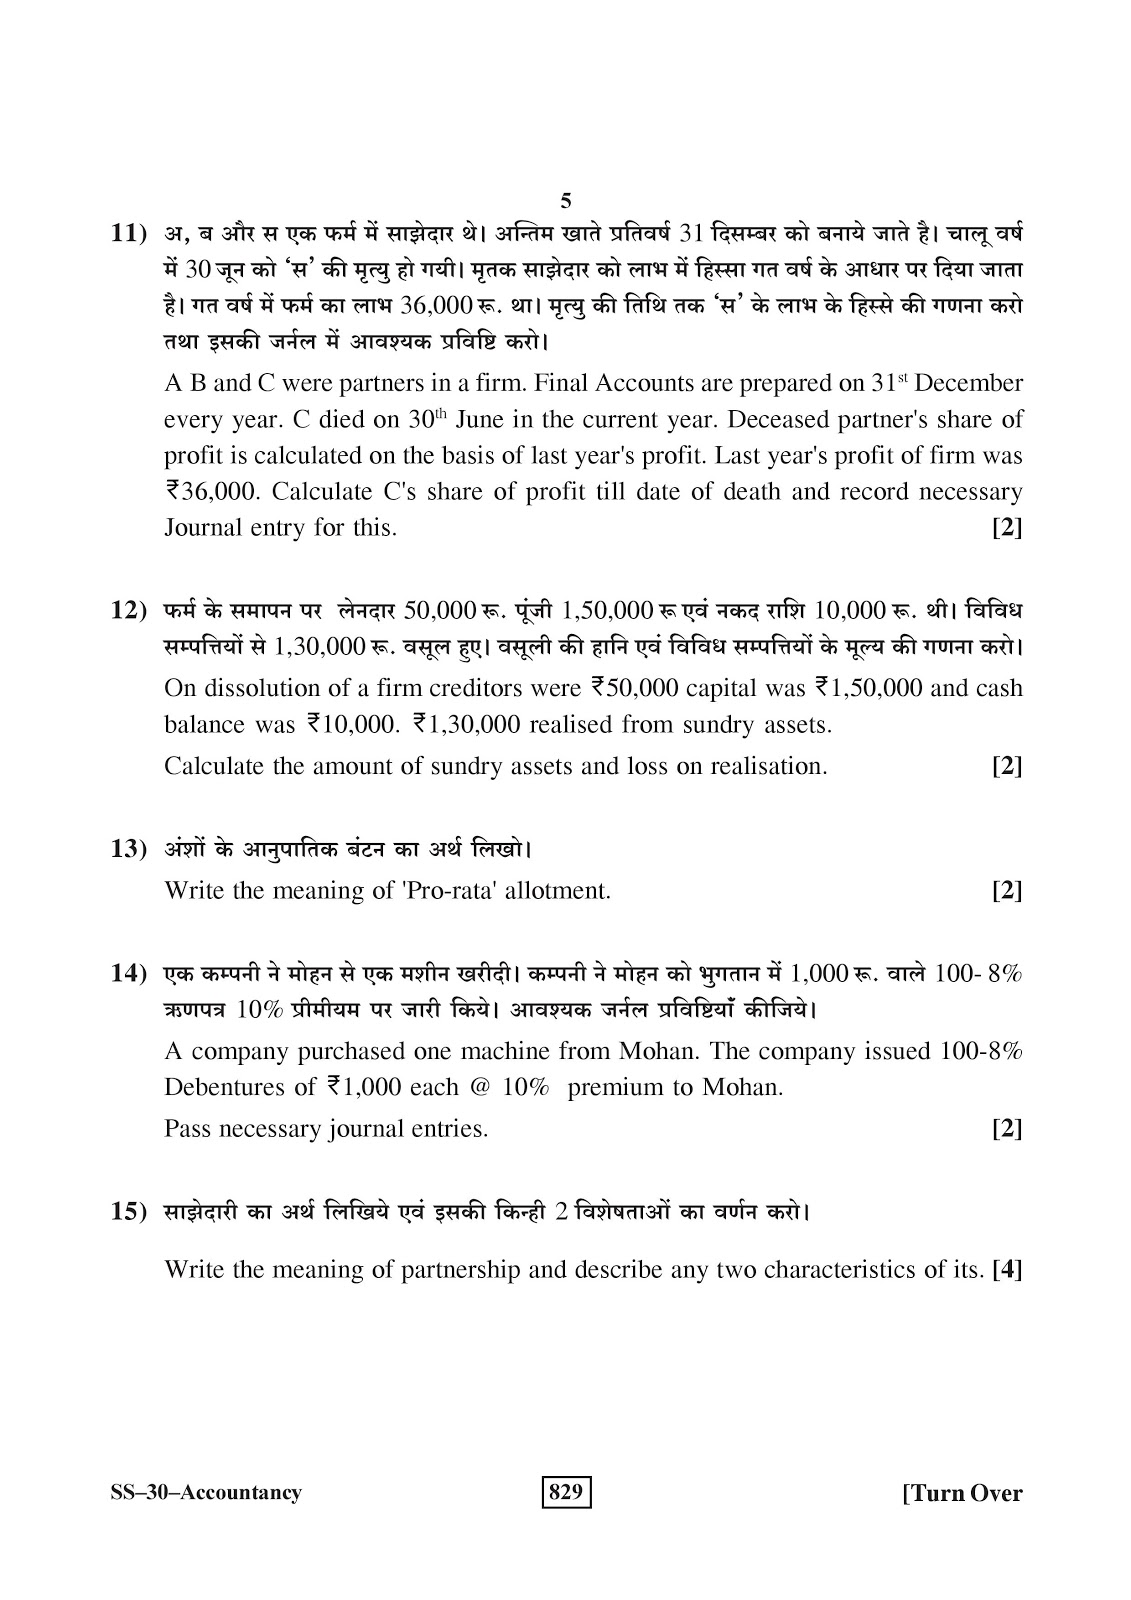 RBSE class 12th 2017 Accountancy question paper